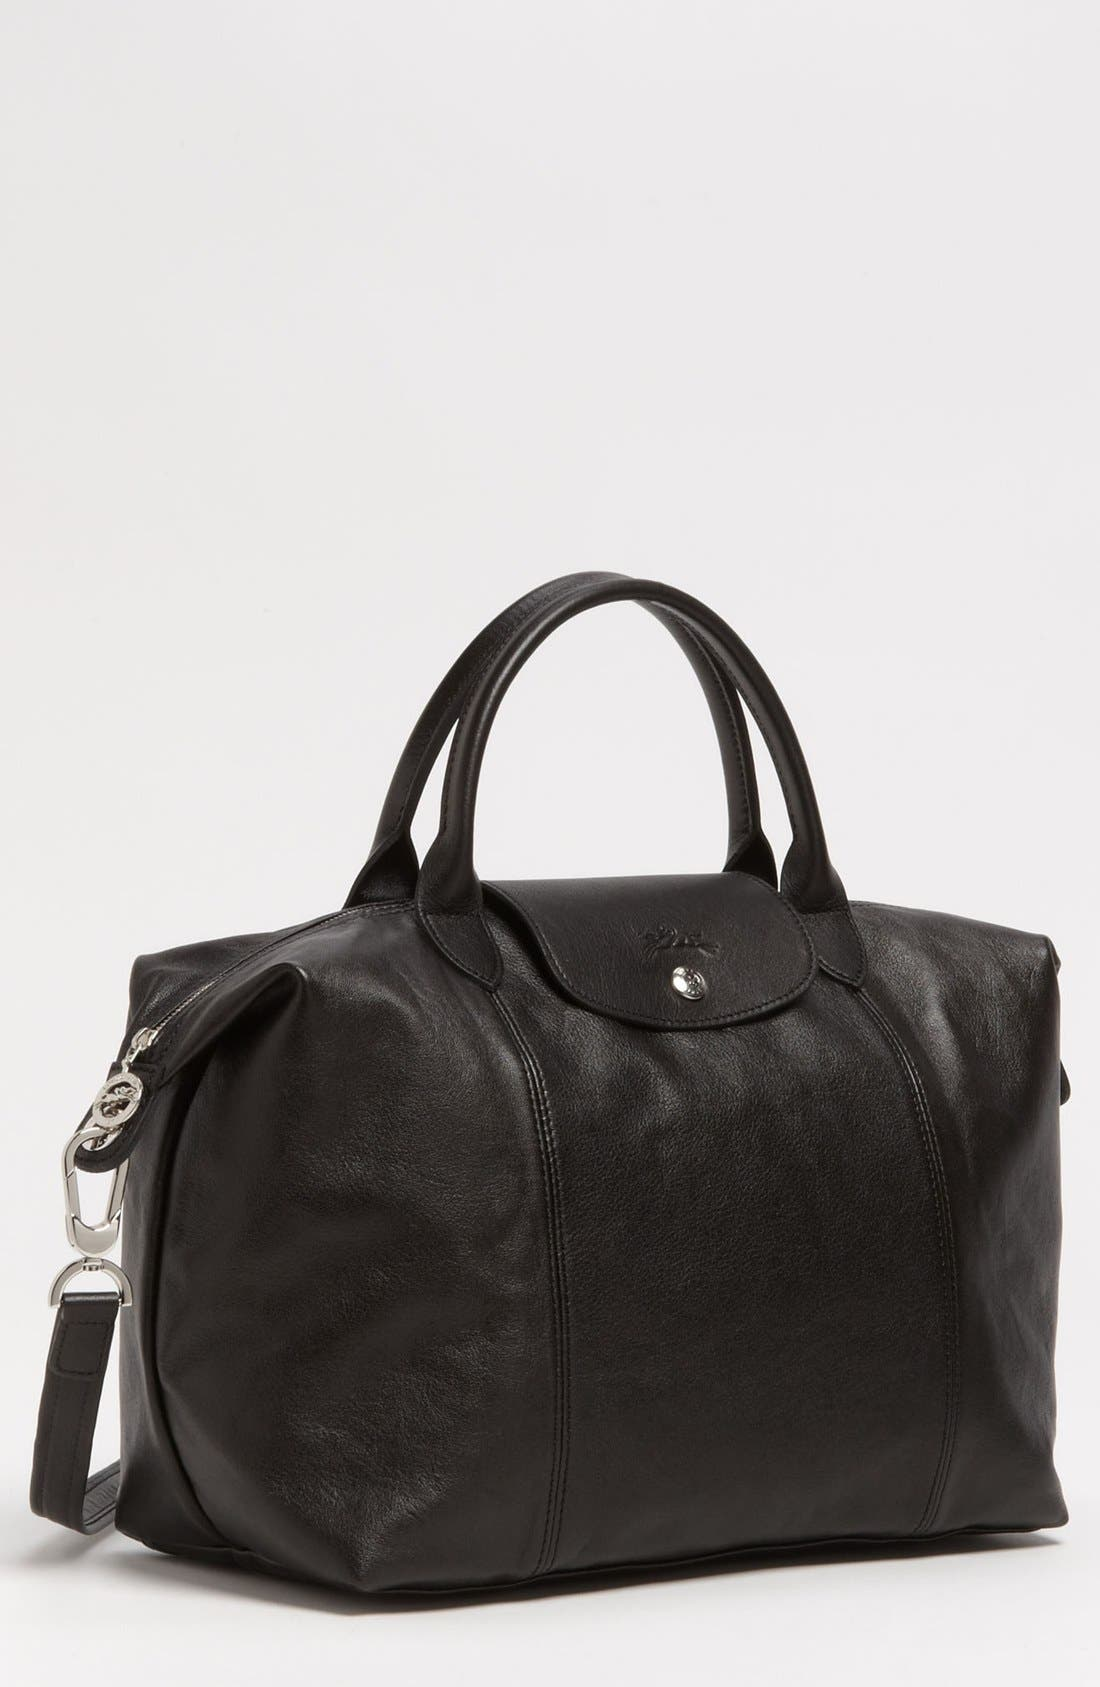 Medium 'Le Pliage Cuir' Leather Top Handle Tote,                             Main thumbnail 4, color,